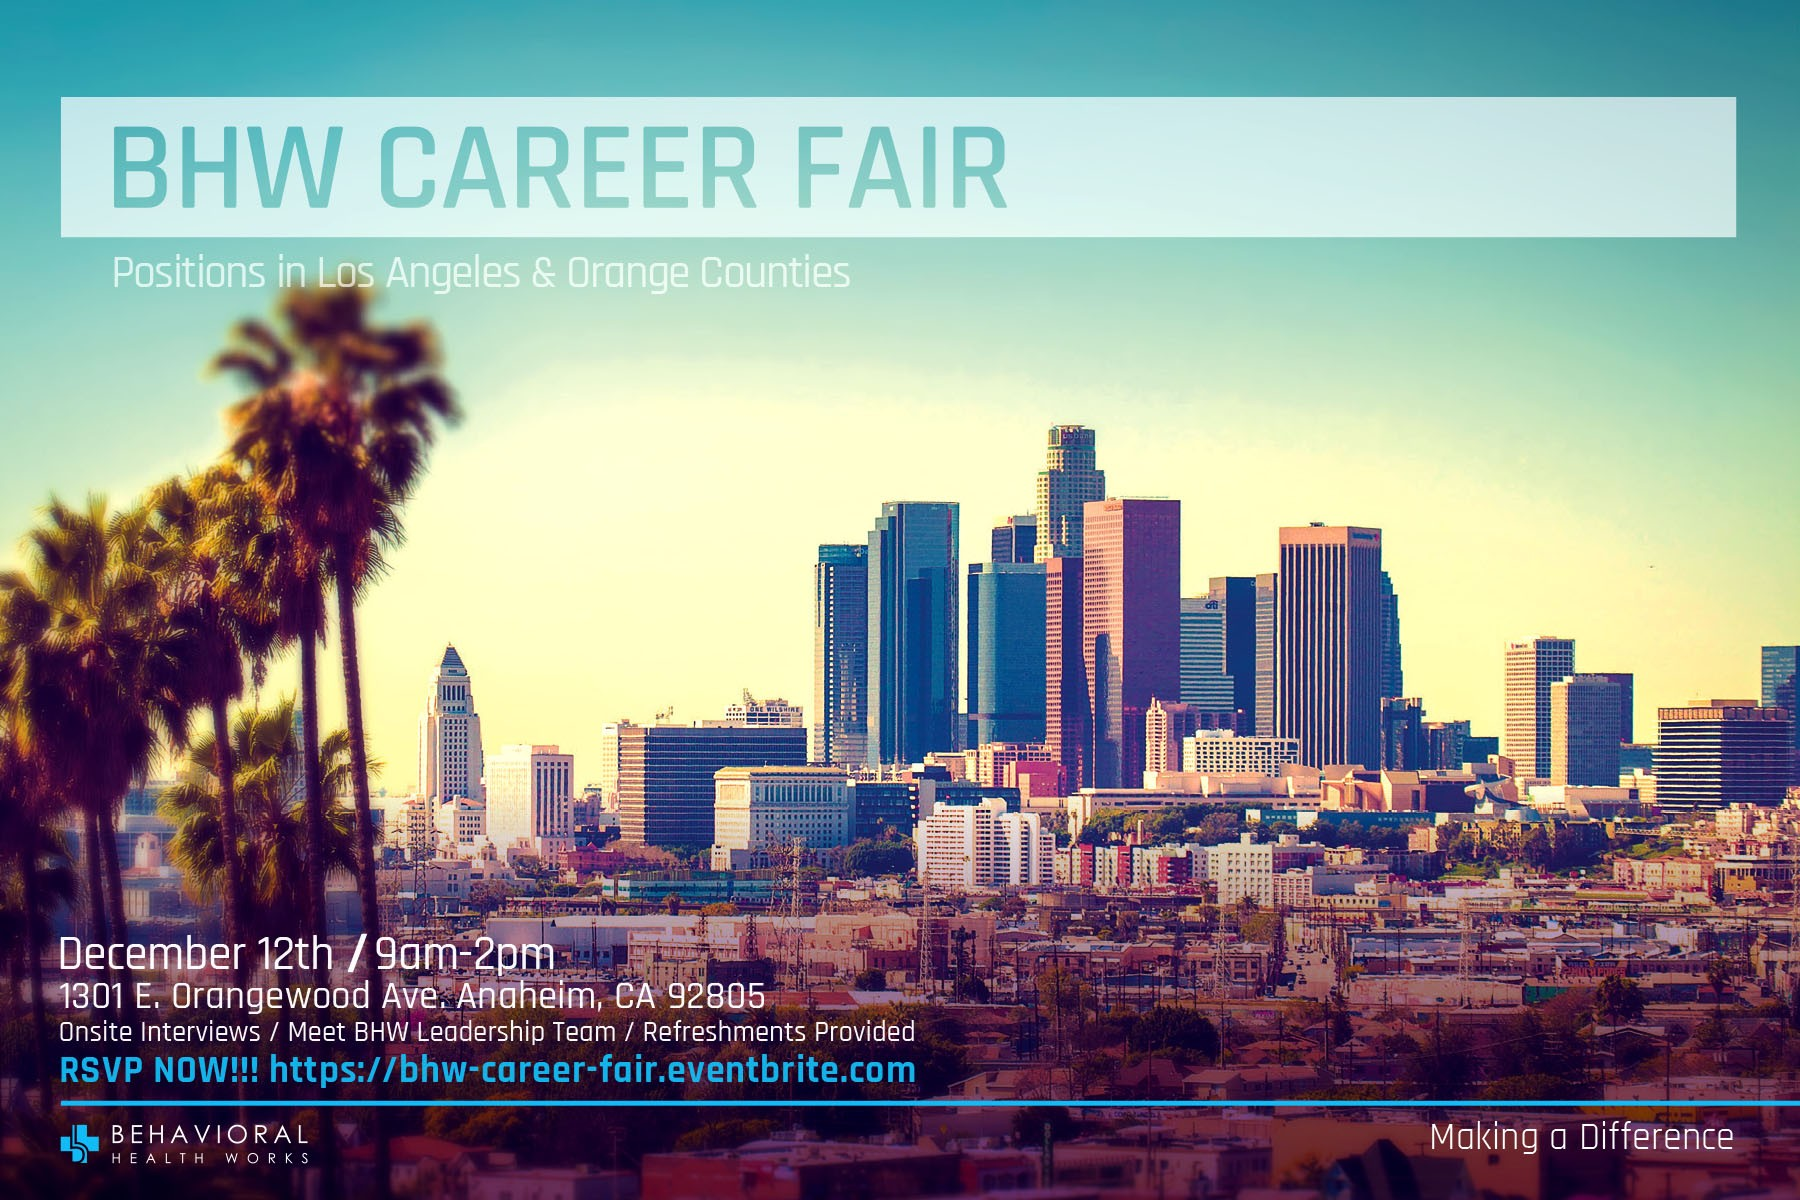 BHW Career Fair for the greater Los Angeles & Orange County area.